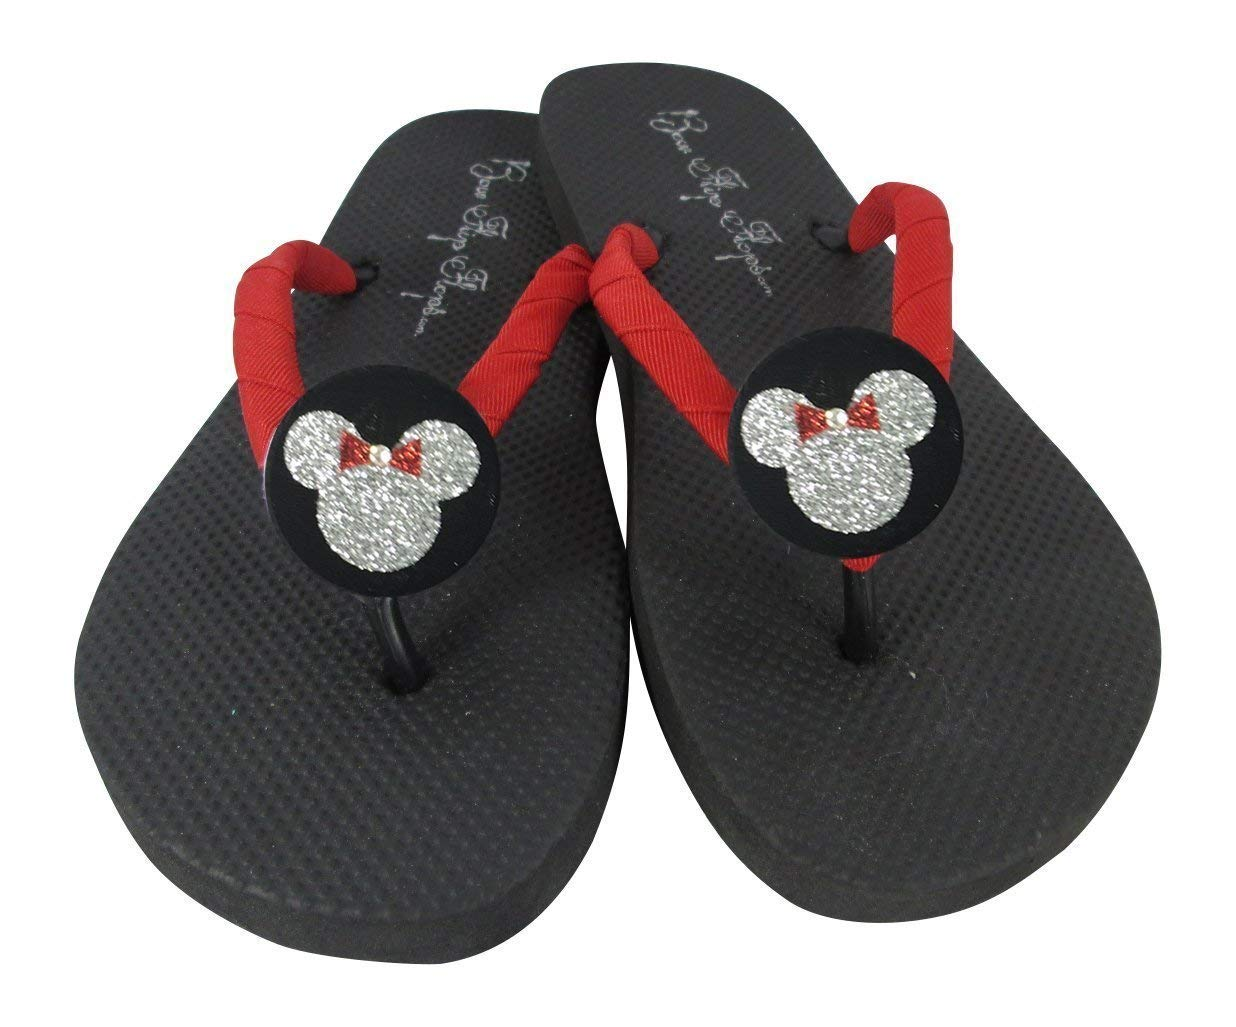 cc8237c9d1154 Get Quotations · Customizable Colors Minnie Mouse Red and Black Glitter Flip  Flops